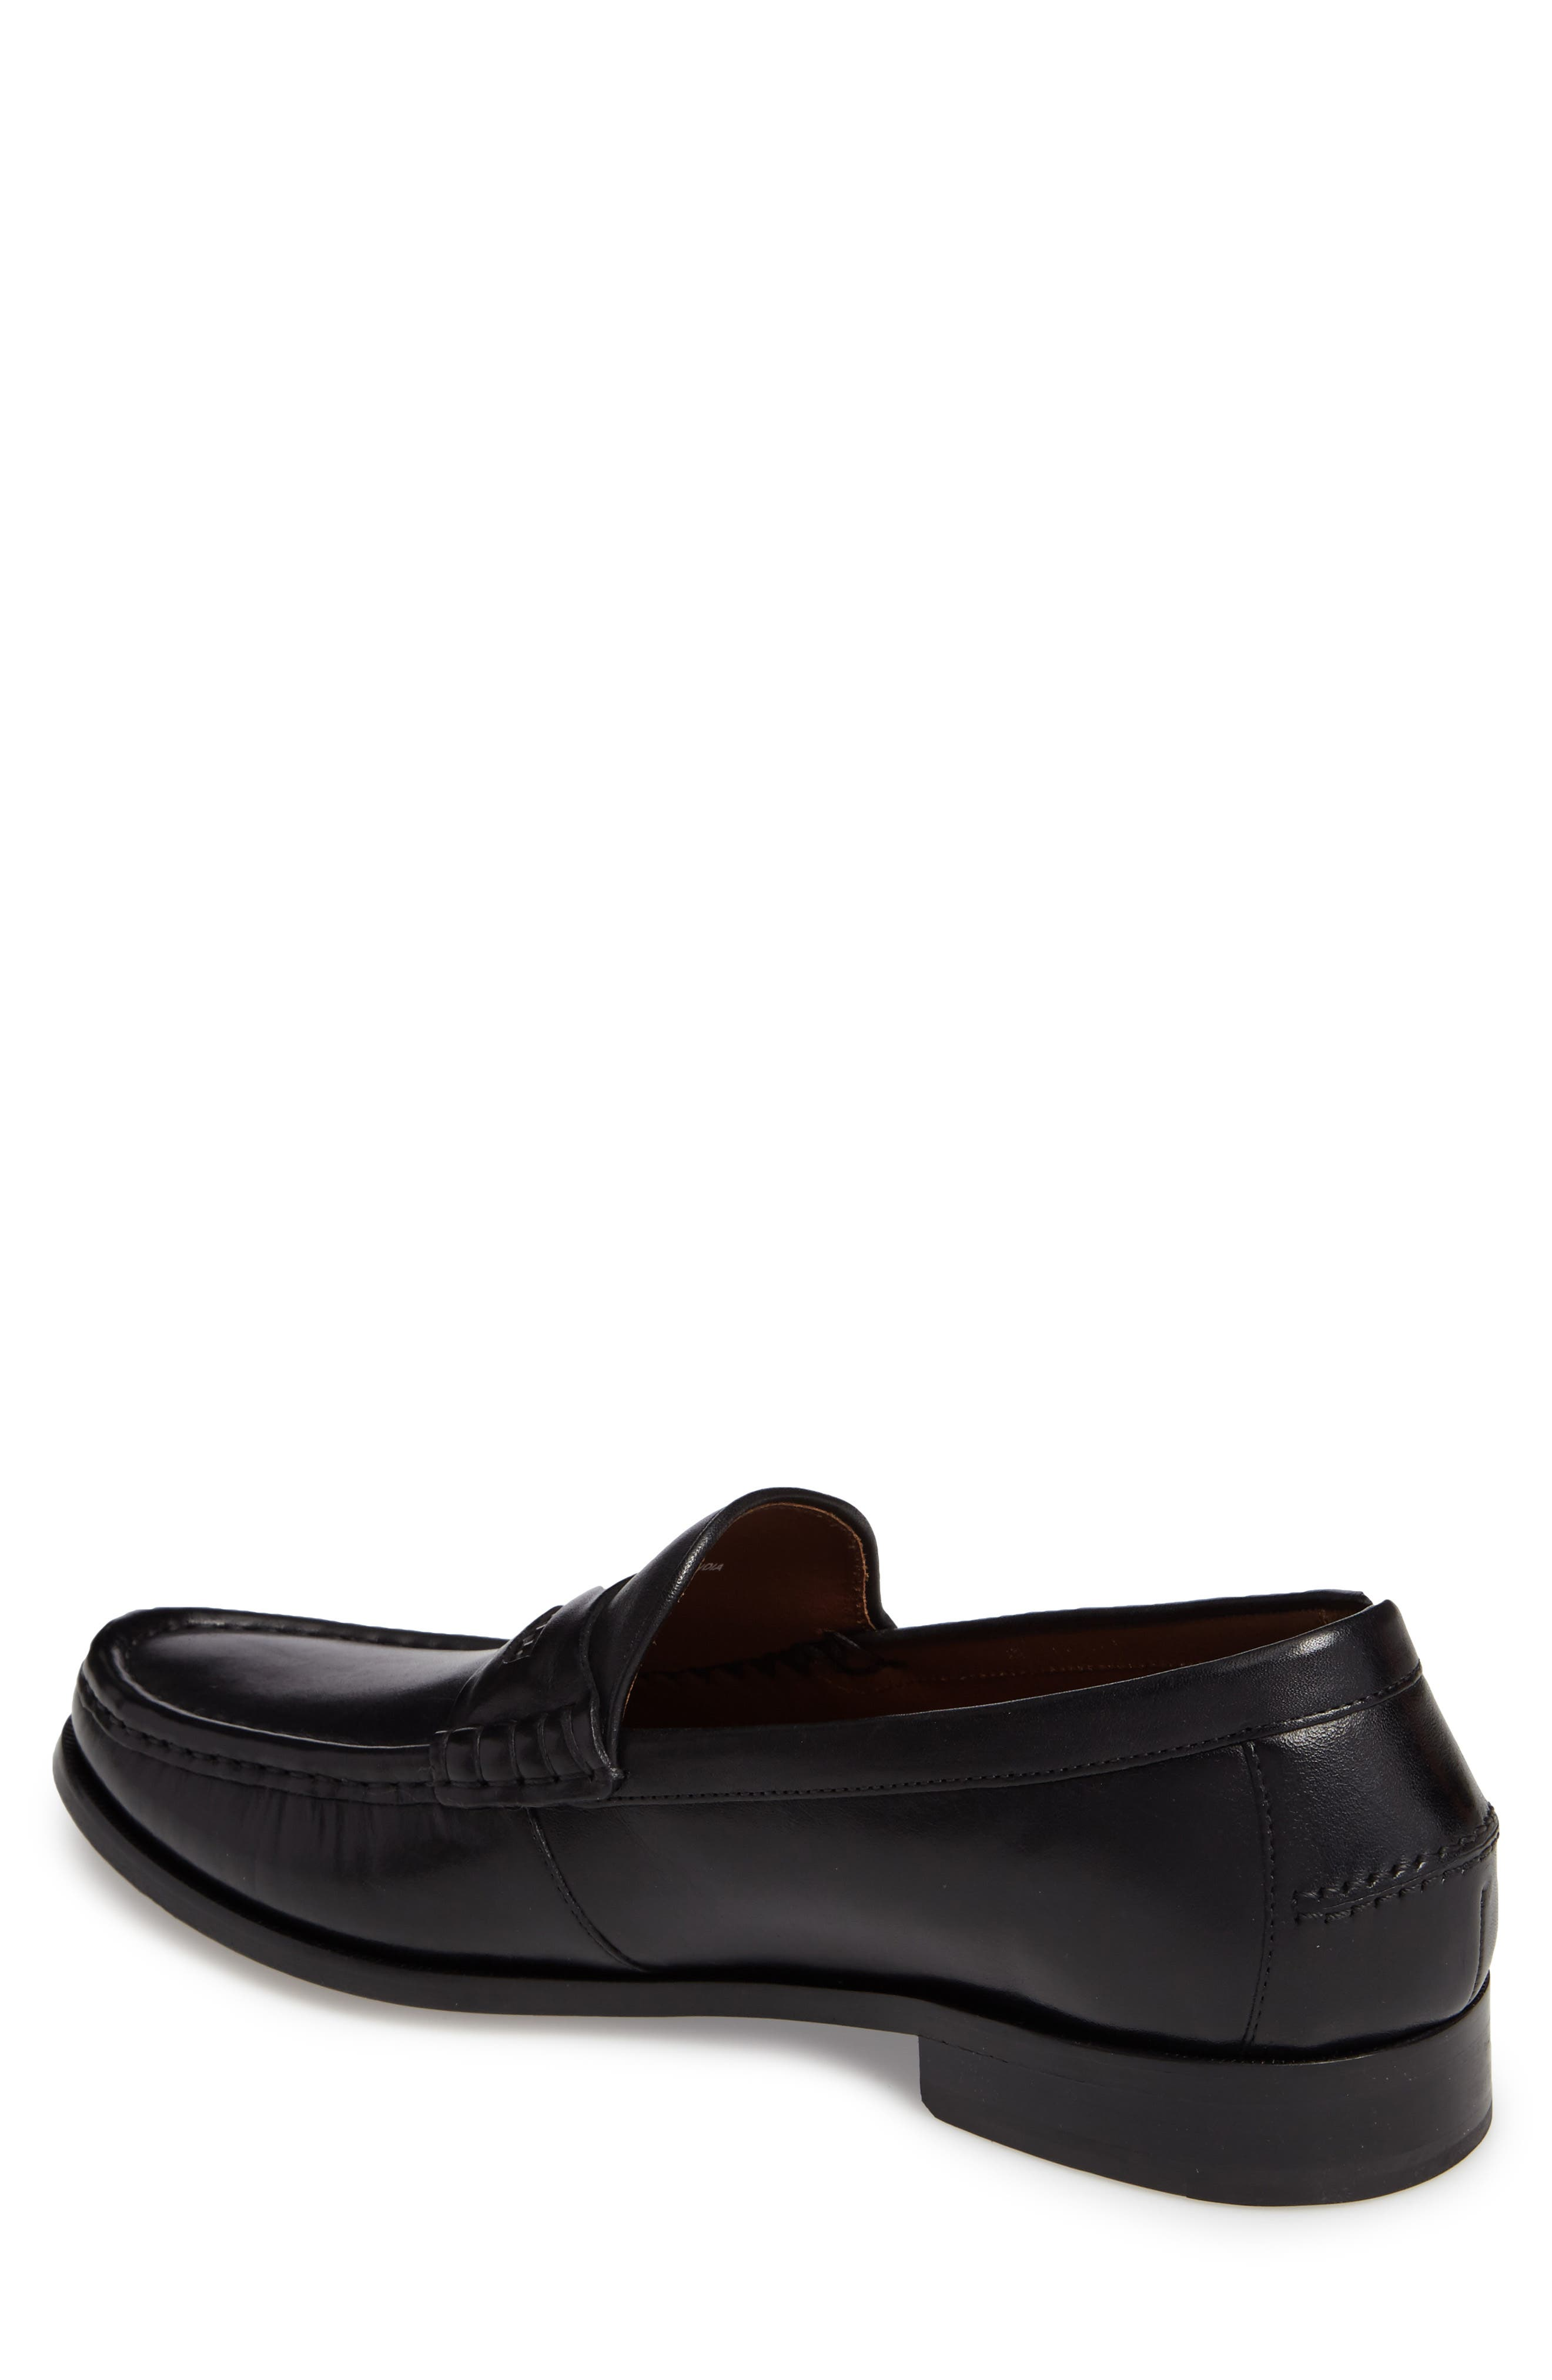 'Pinch Gotham' Penny Loafer,                             Alternate thumbnail 2, color,                             001